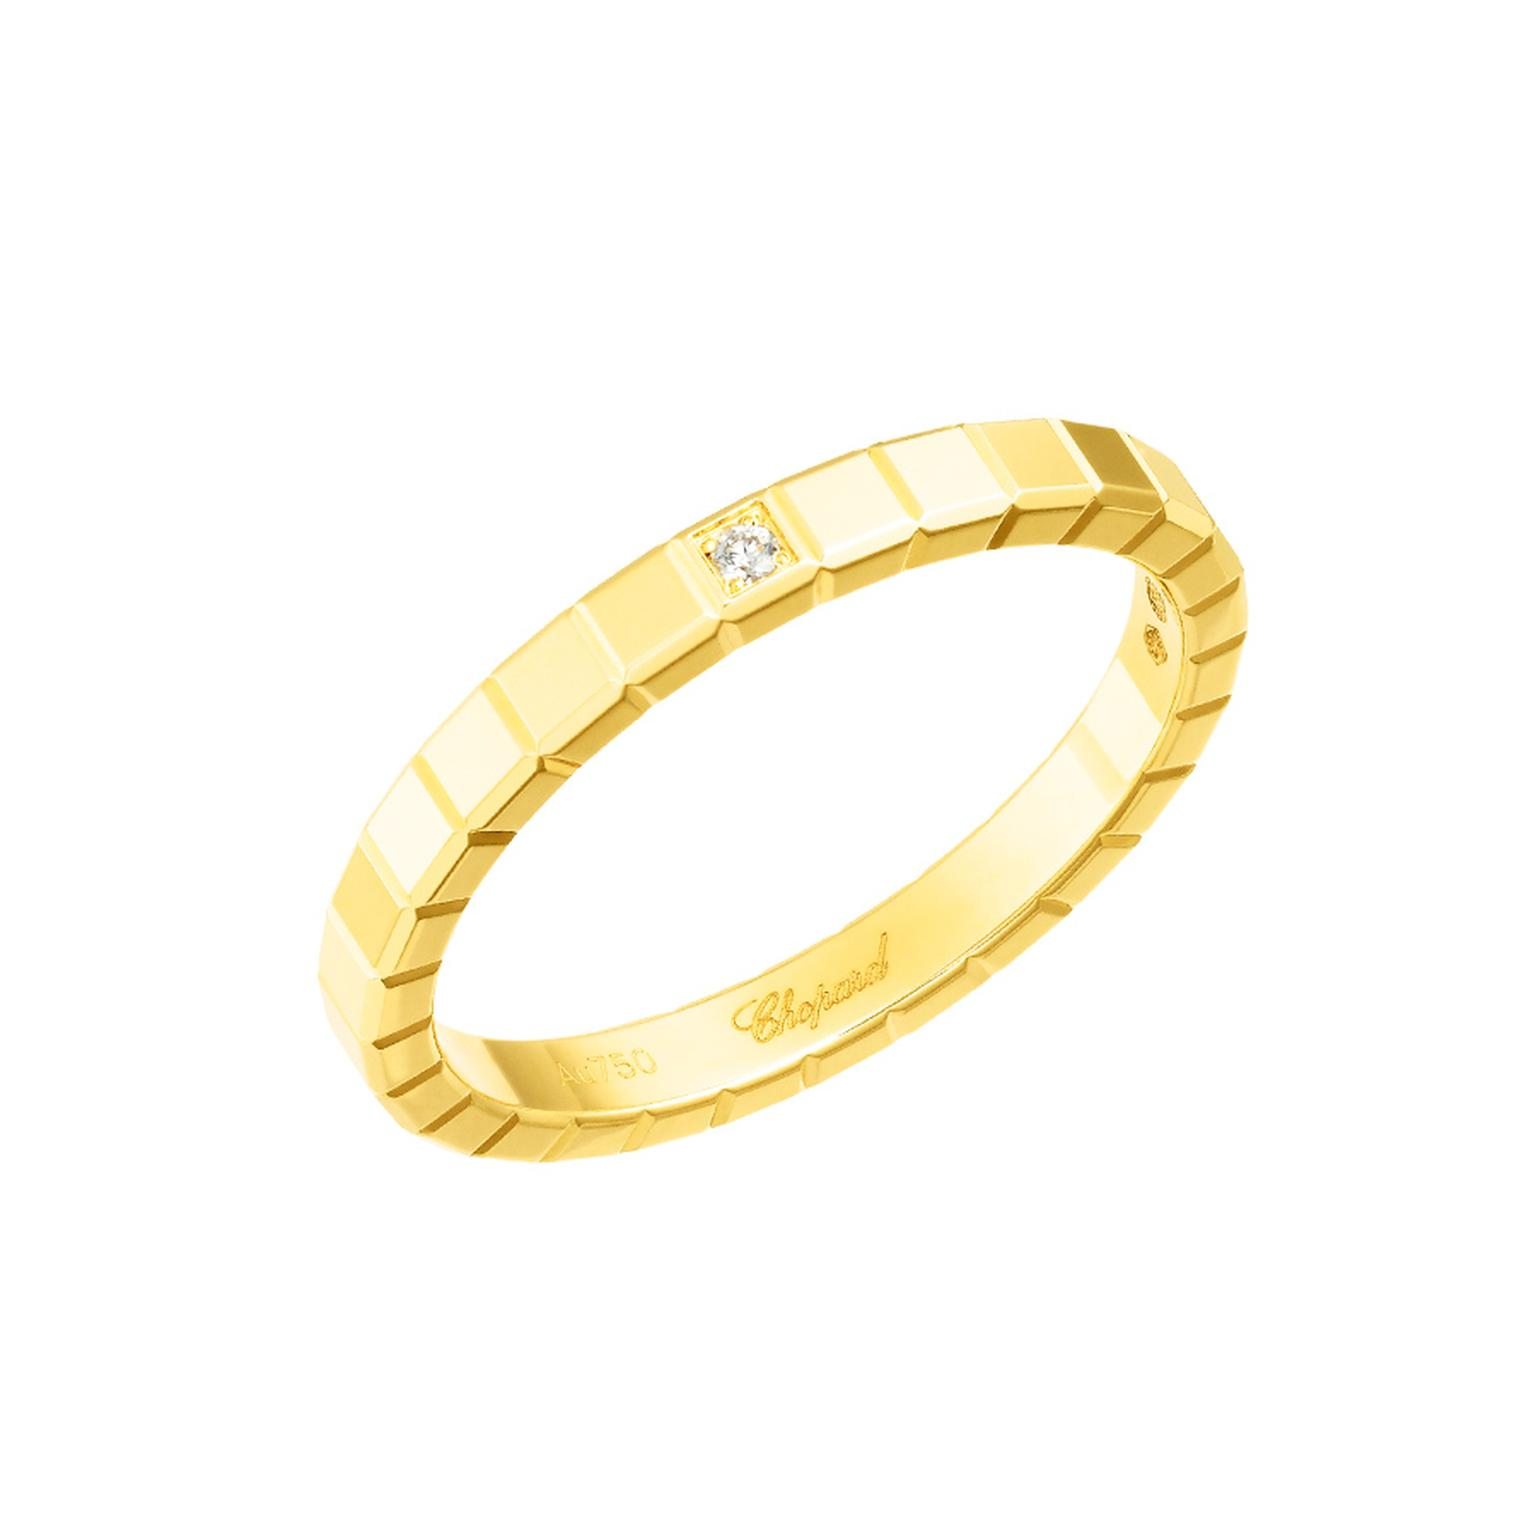 Chopard yellow gold Ice Cube ring